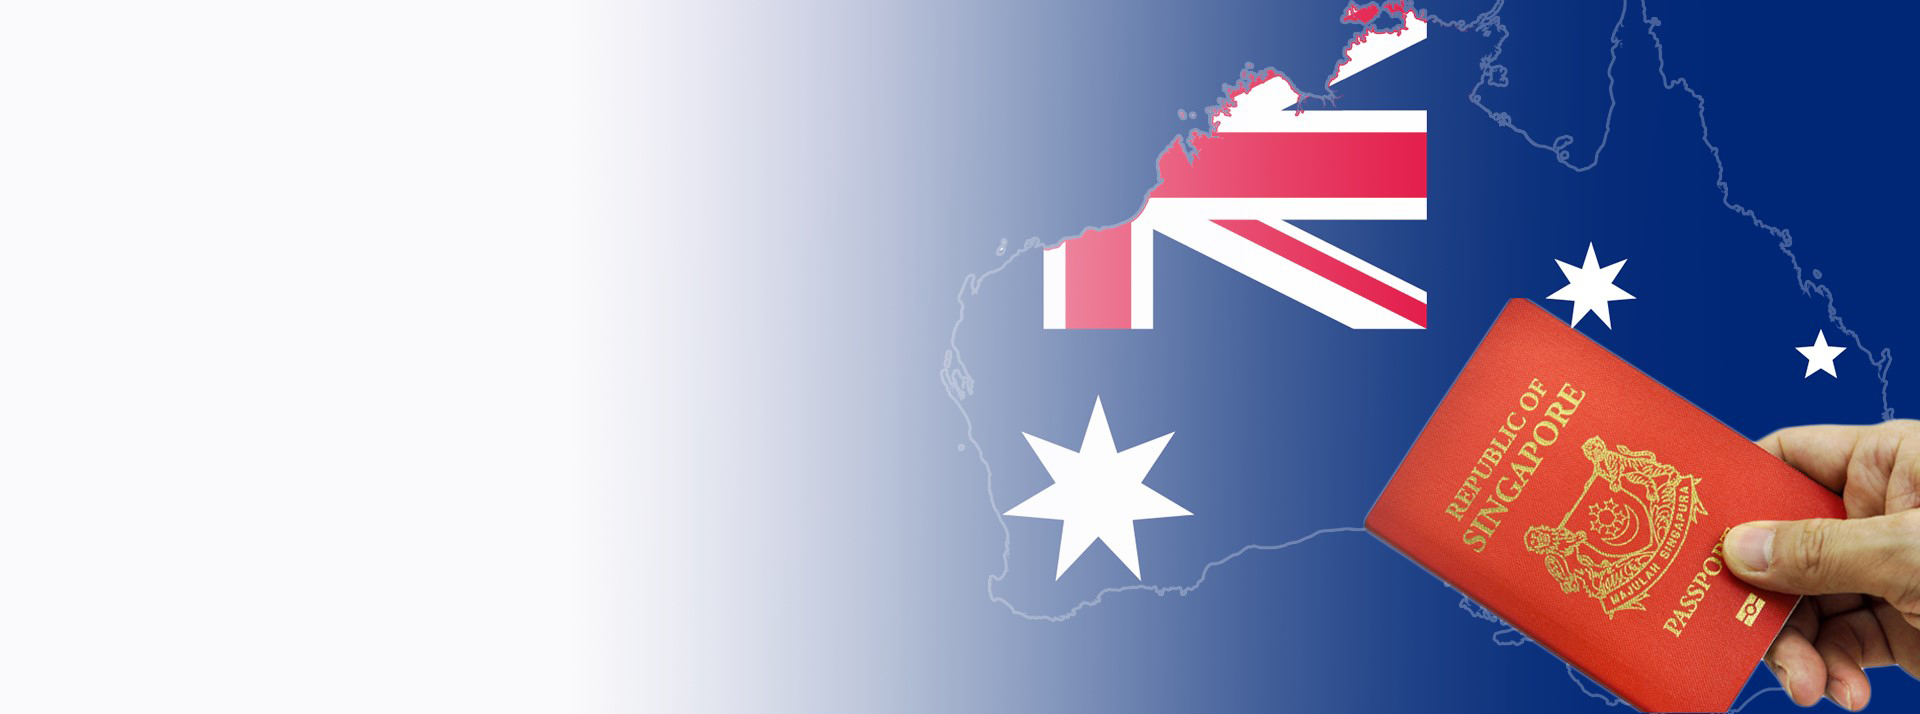 france visa check australian convention travel document